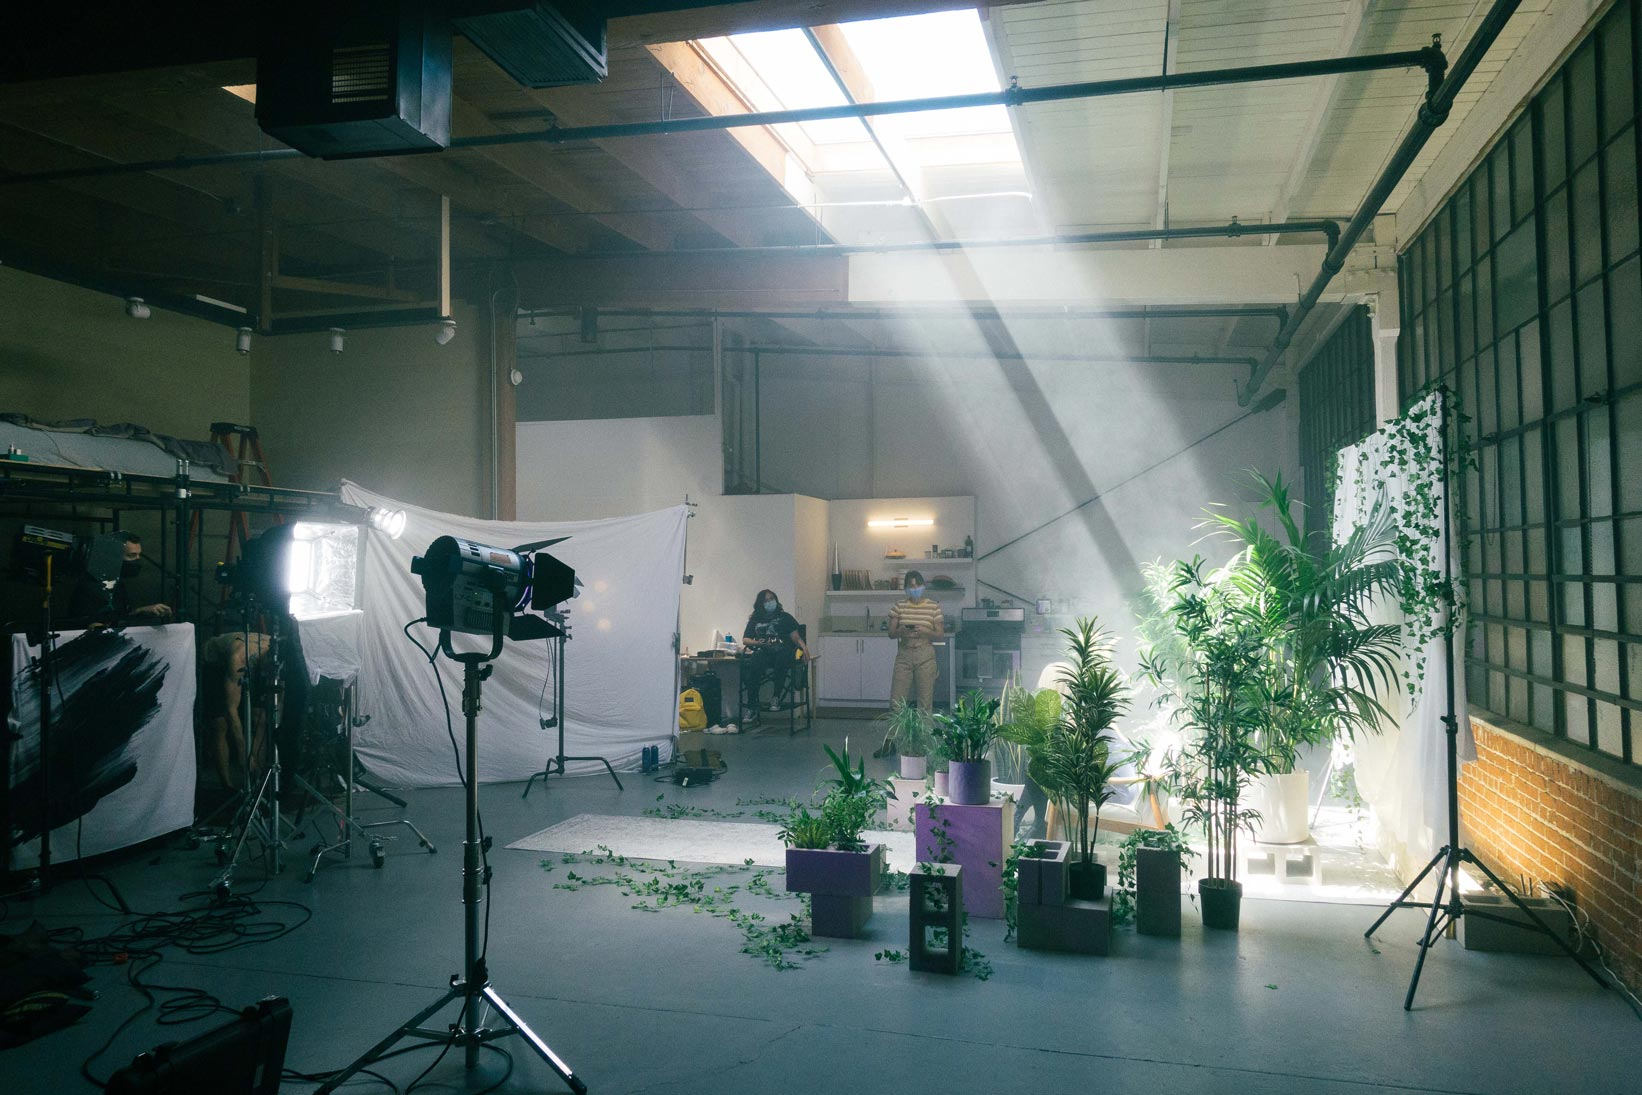 A beam of light lighting the studio with artificial haze and fog to increase the atmosphere look.